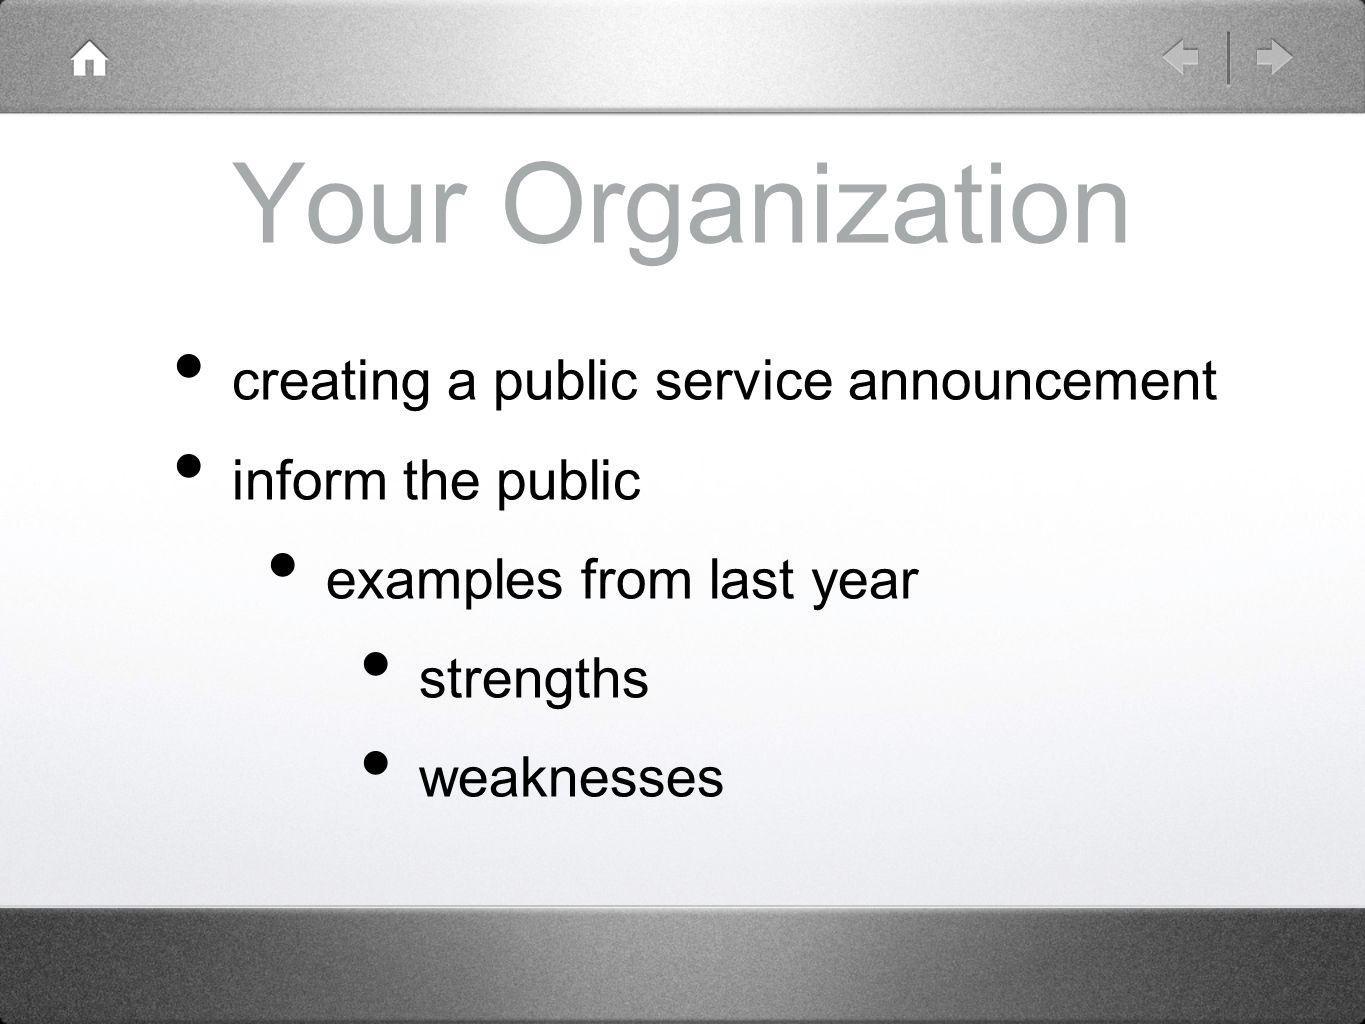 part internationalism and contemporary global affairs ppt 16 your organization creating a public service announcement inform the public examples from last year strengths weaknesses